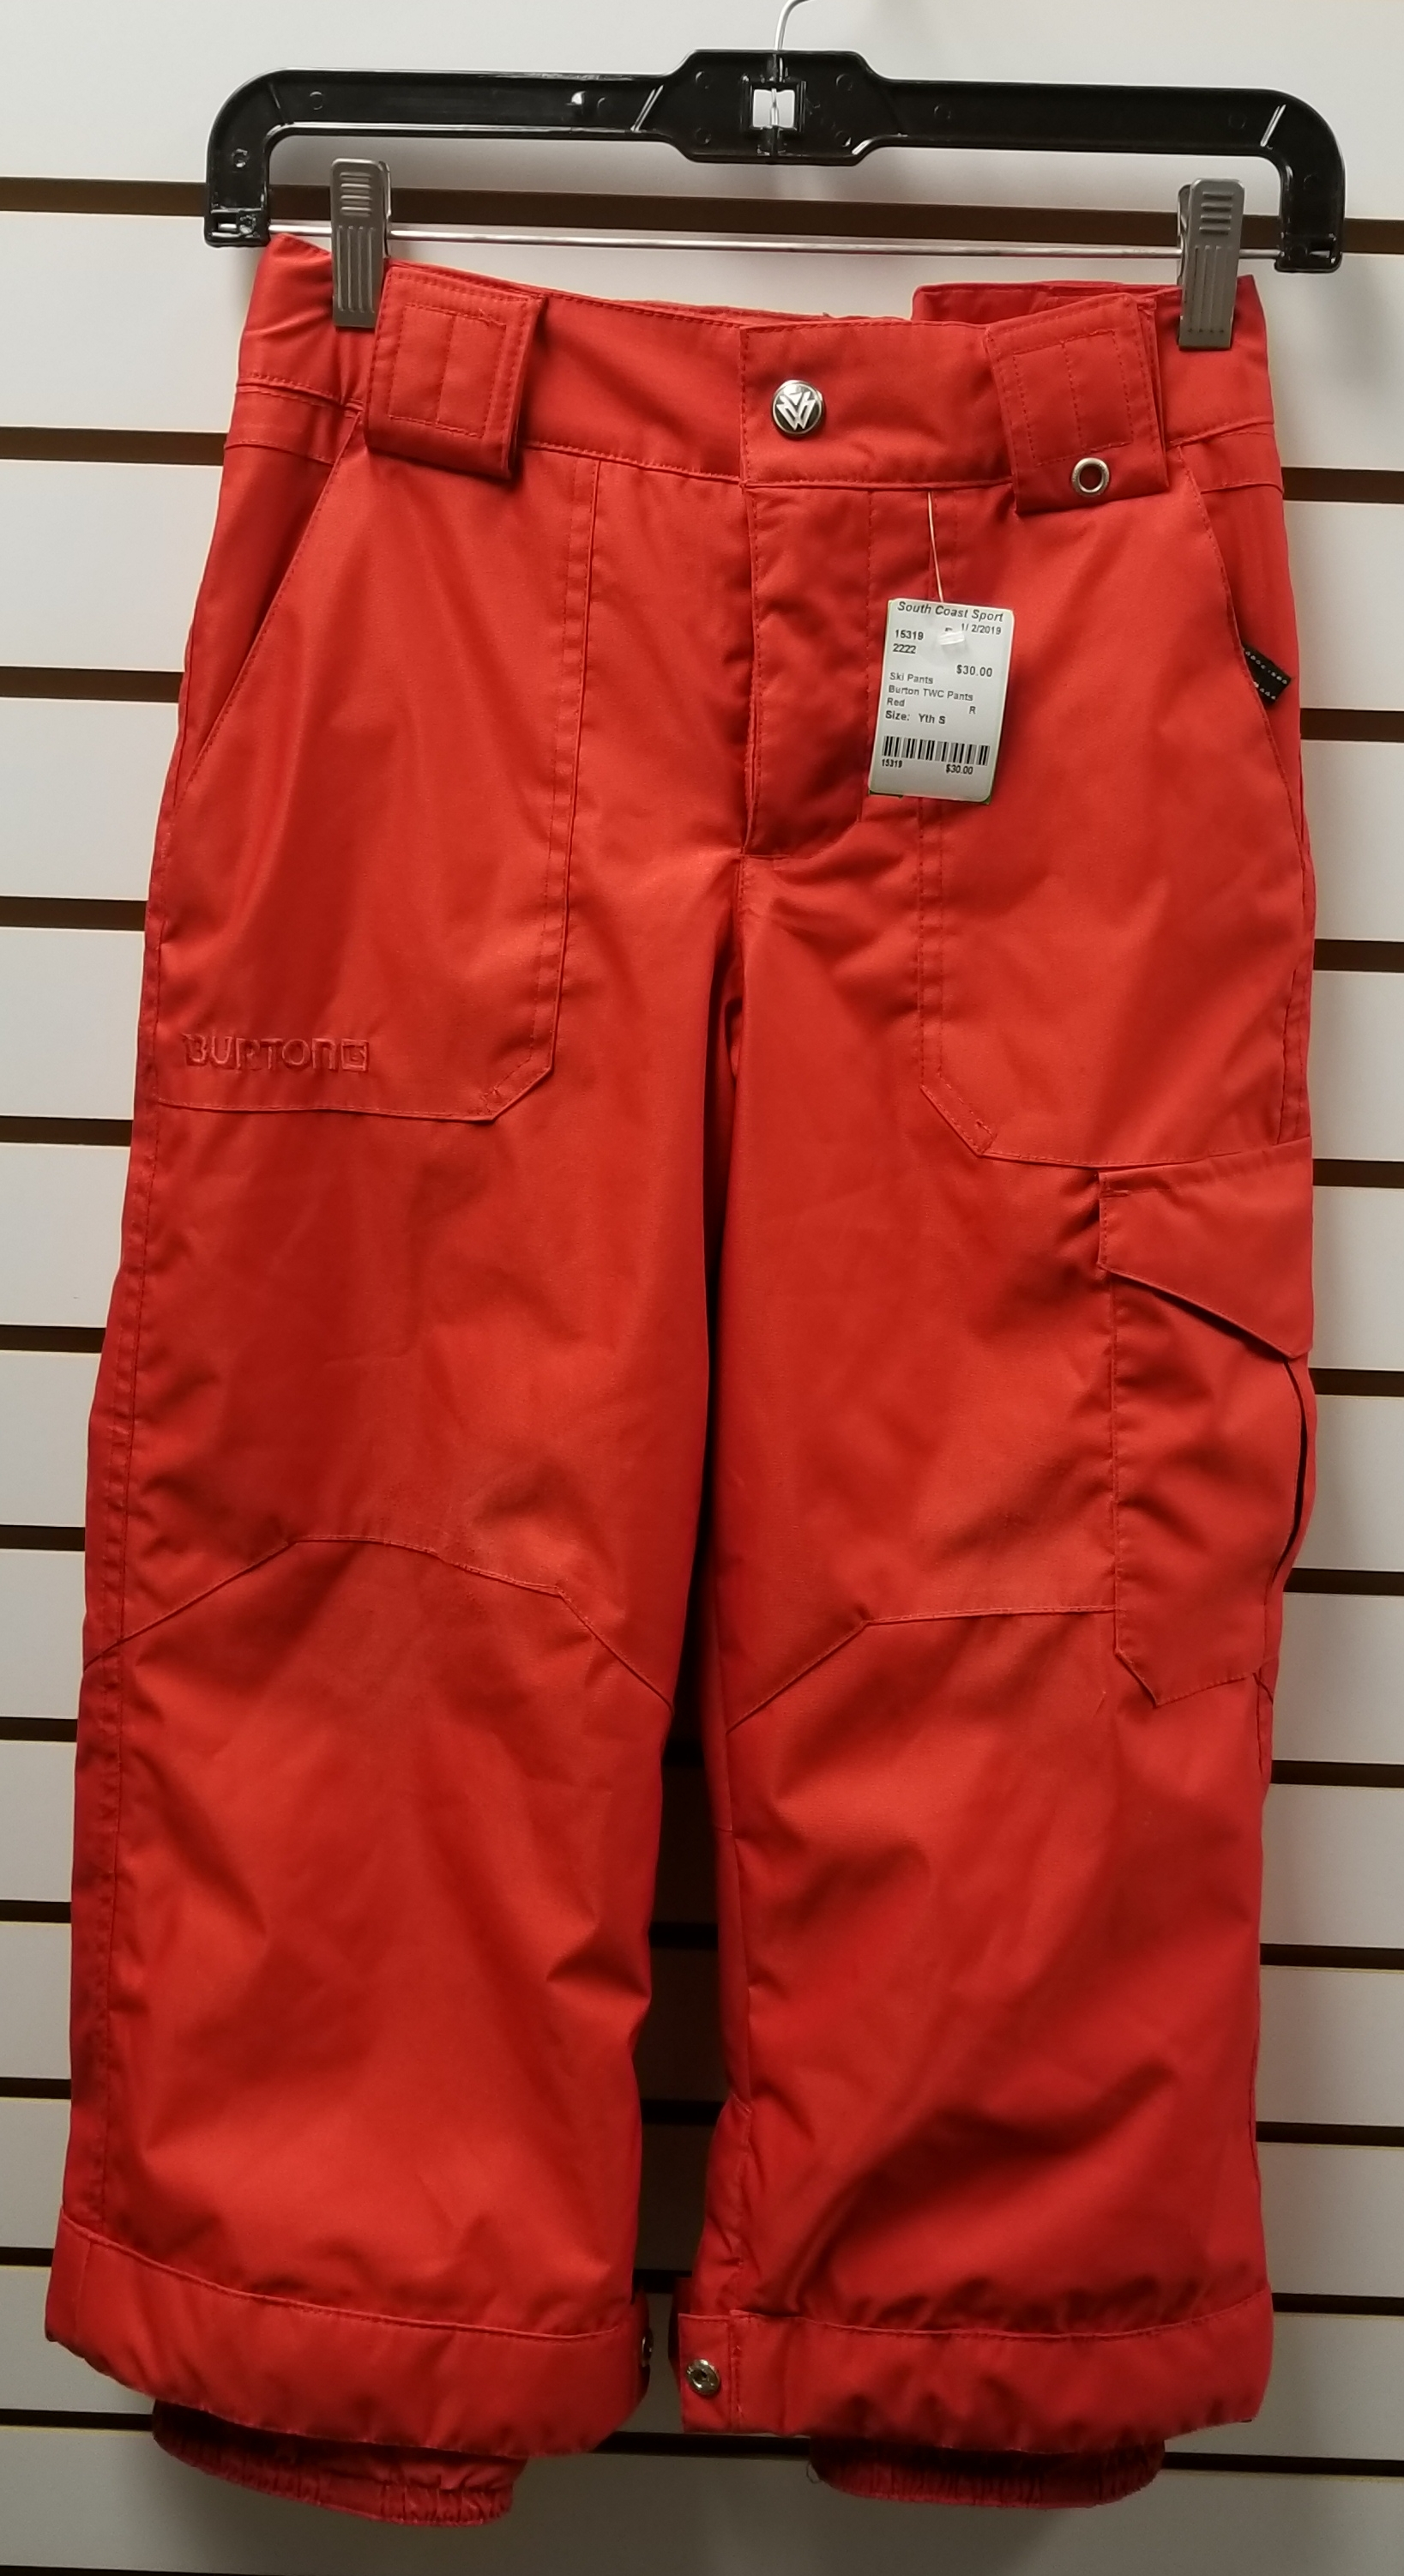 Burton The White Collection Snowboard Pants, Red, Size: Yth S